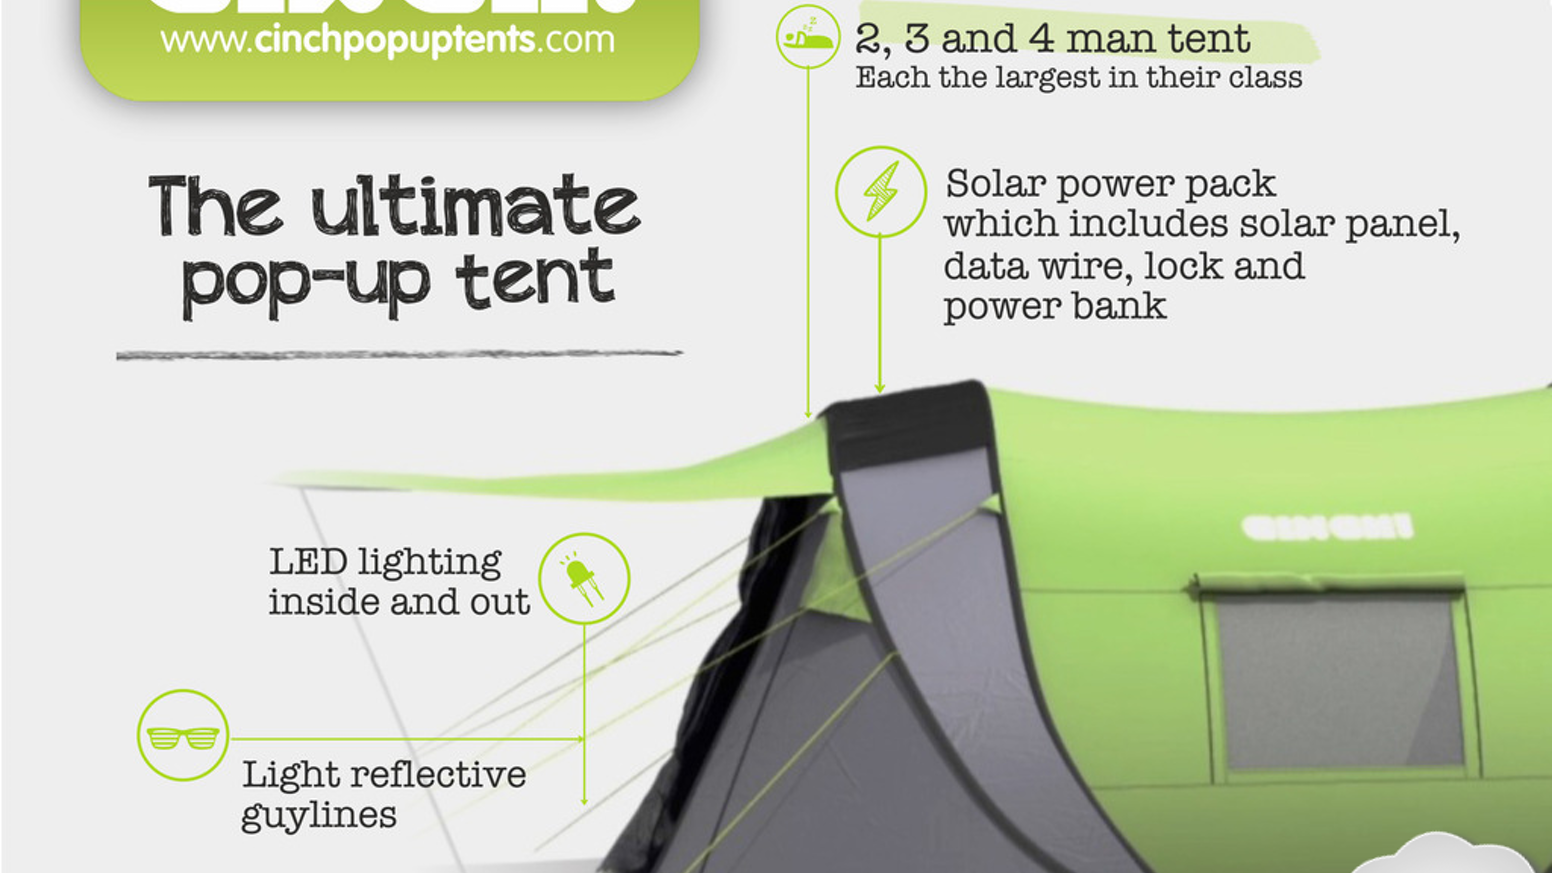 Advanced tent features in a quick & easy pop-up, with LED lighting & solar power. The Cinch! will never compromise your adventures.